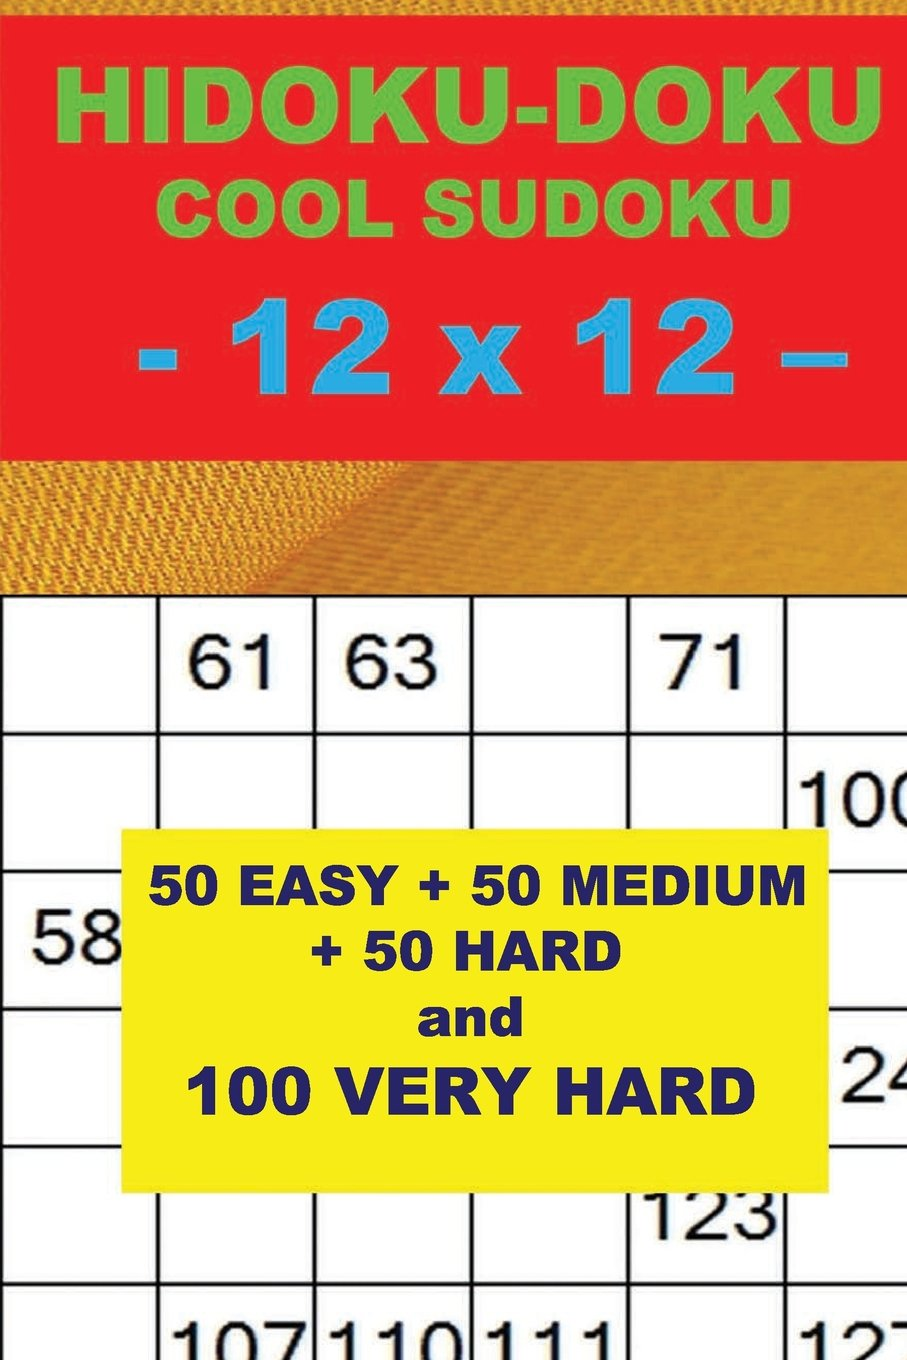 Download HIDOKU-DOKU - COOL SUDOKU - 12 x 12 -: 50 EASY + 50 MEDIUM + 50 HARD and 100 VERY HARD. This is the perfect book for you. (PITSTOP Doku) (Volume 7) PDF